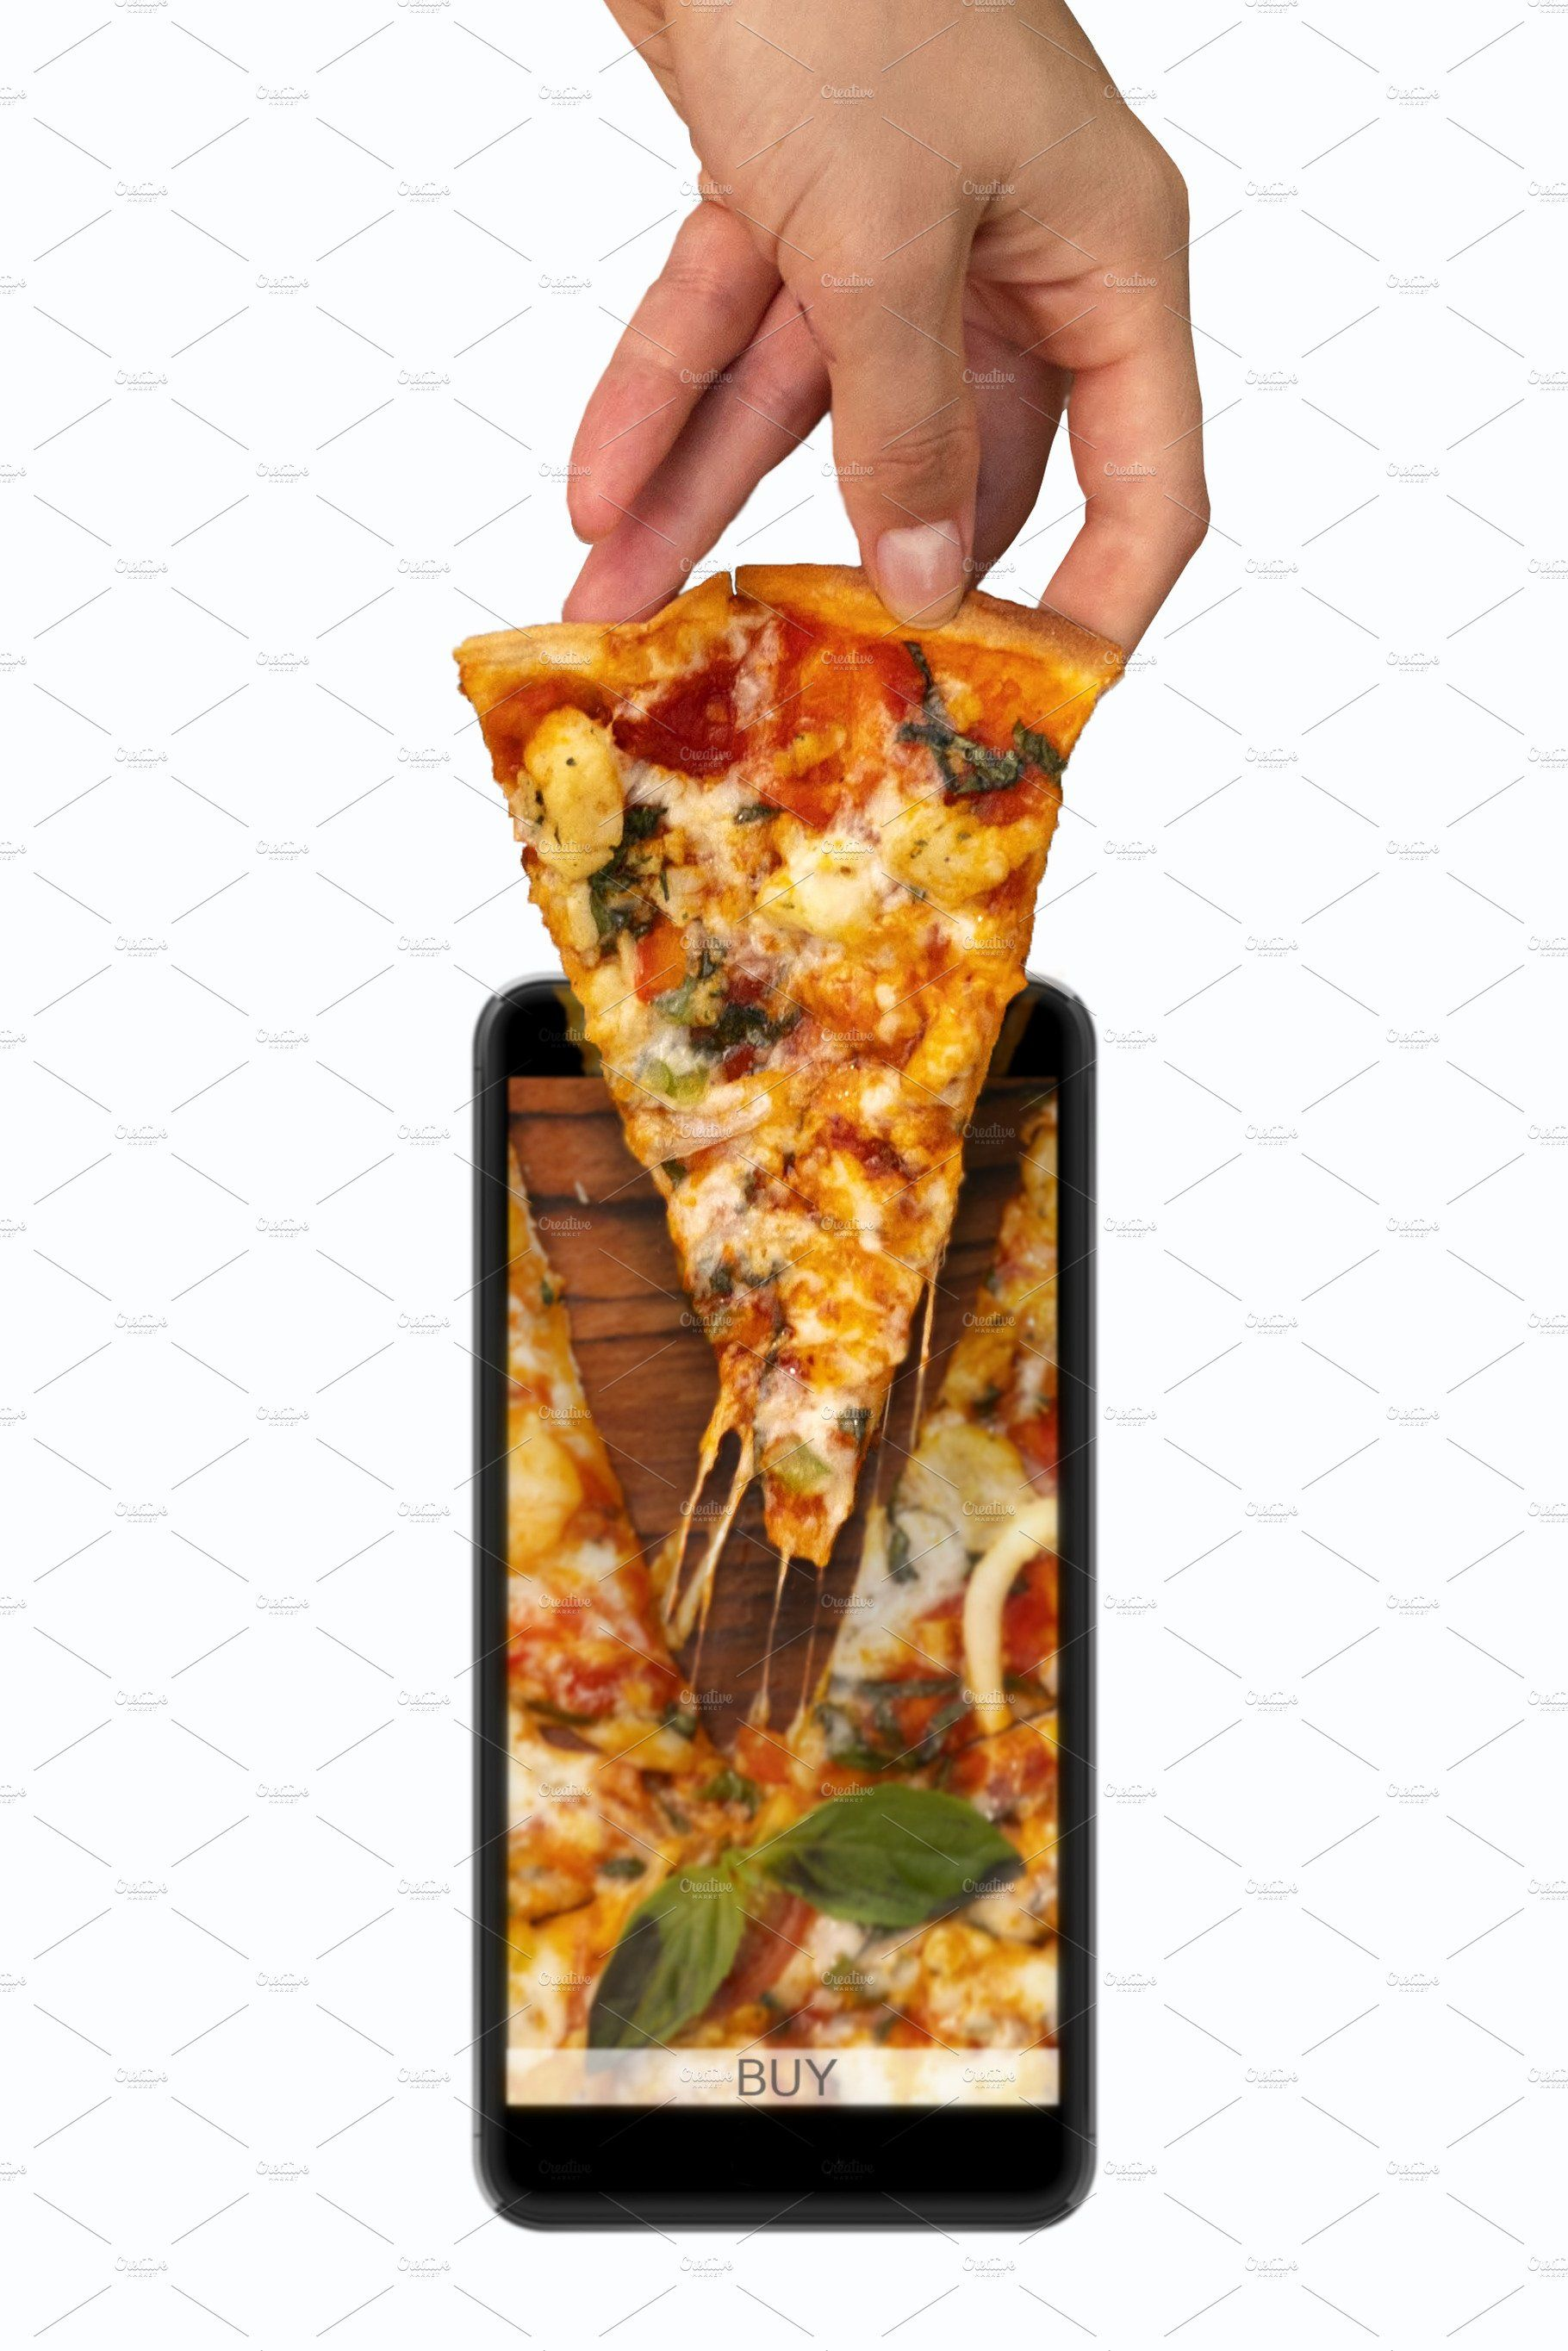 Pizza Delivery Food Advertising Food Design Food